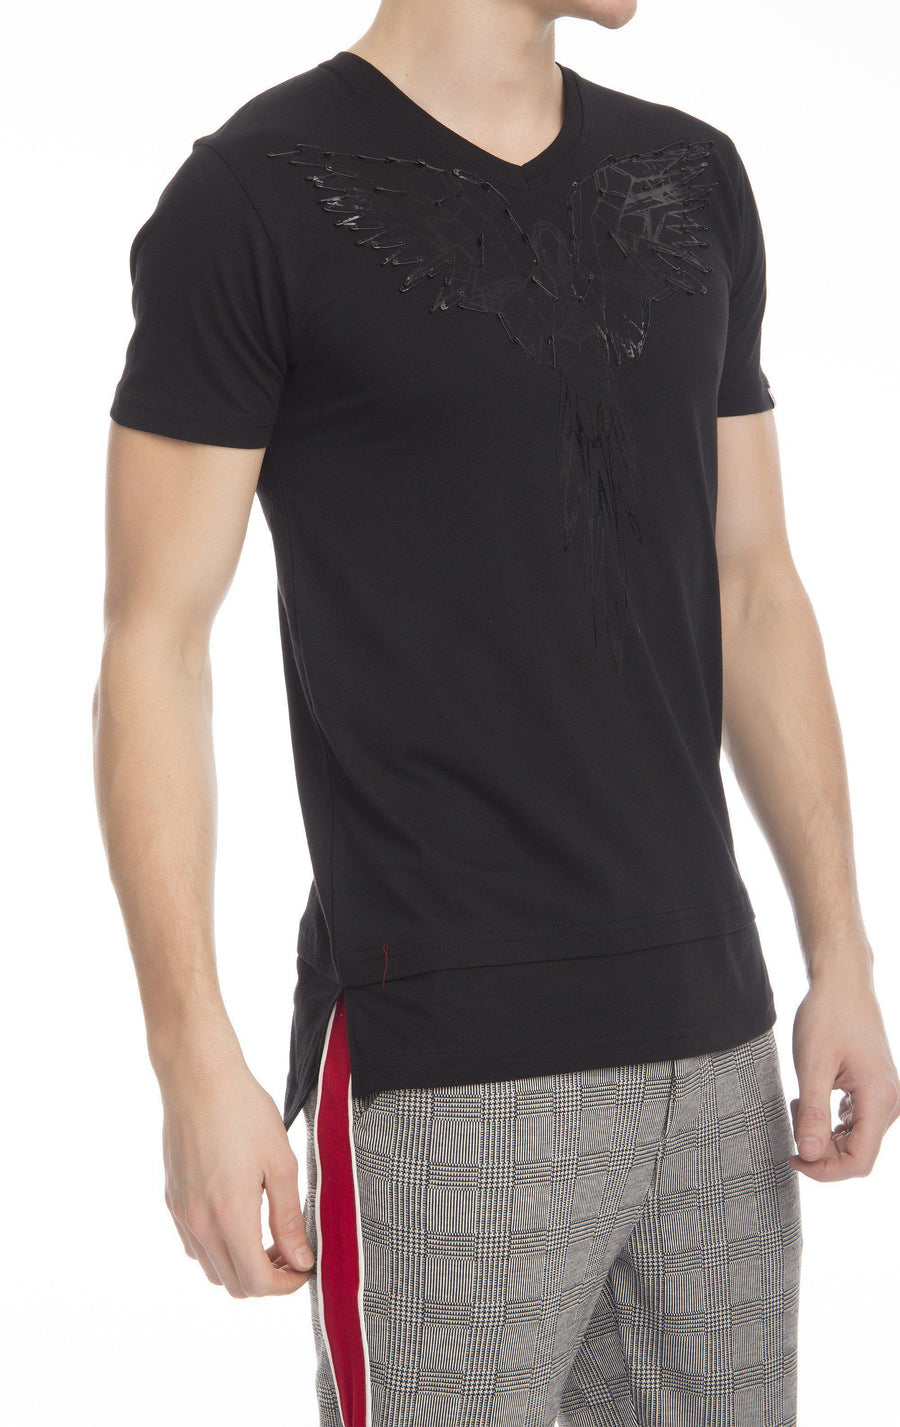 Fly Solo Fitted Cotton Long T-shirt-T-shirts-Ron Tomson-BLACK-M-Ron Tomson